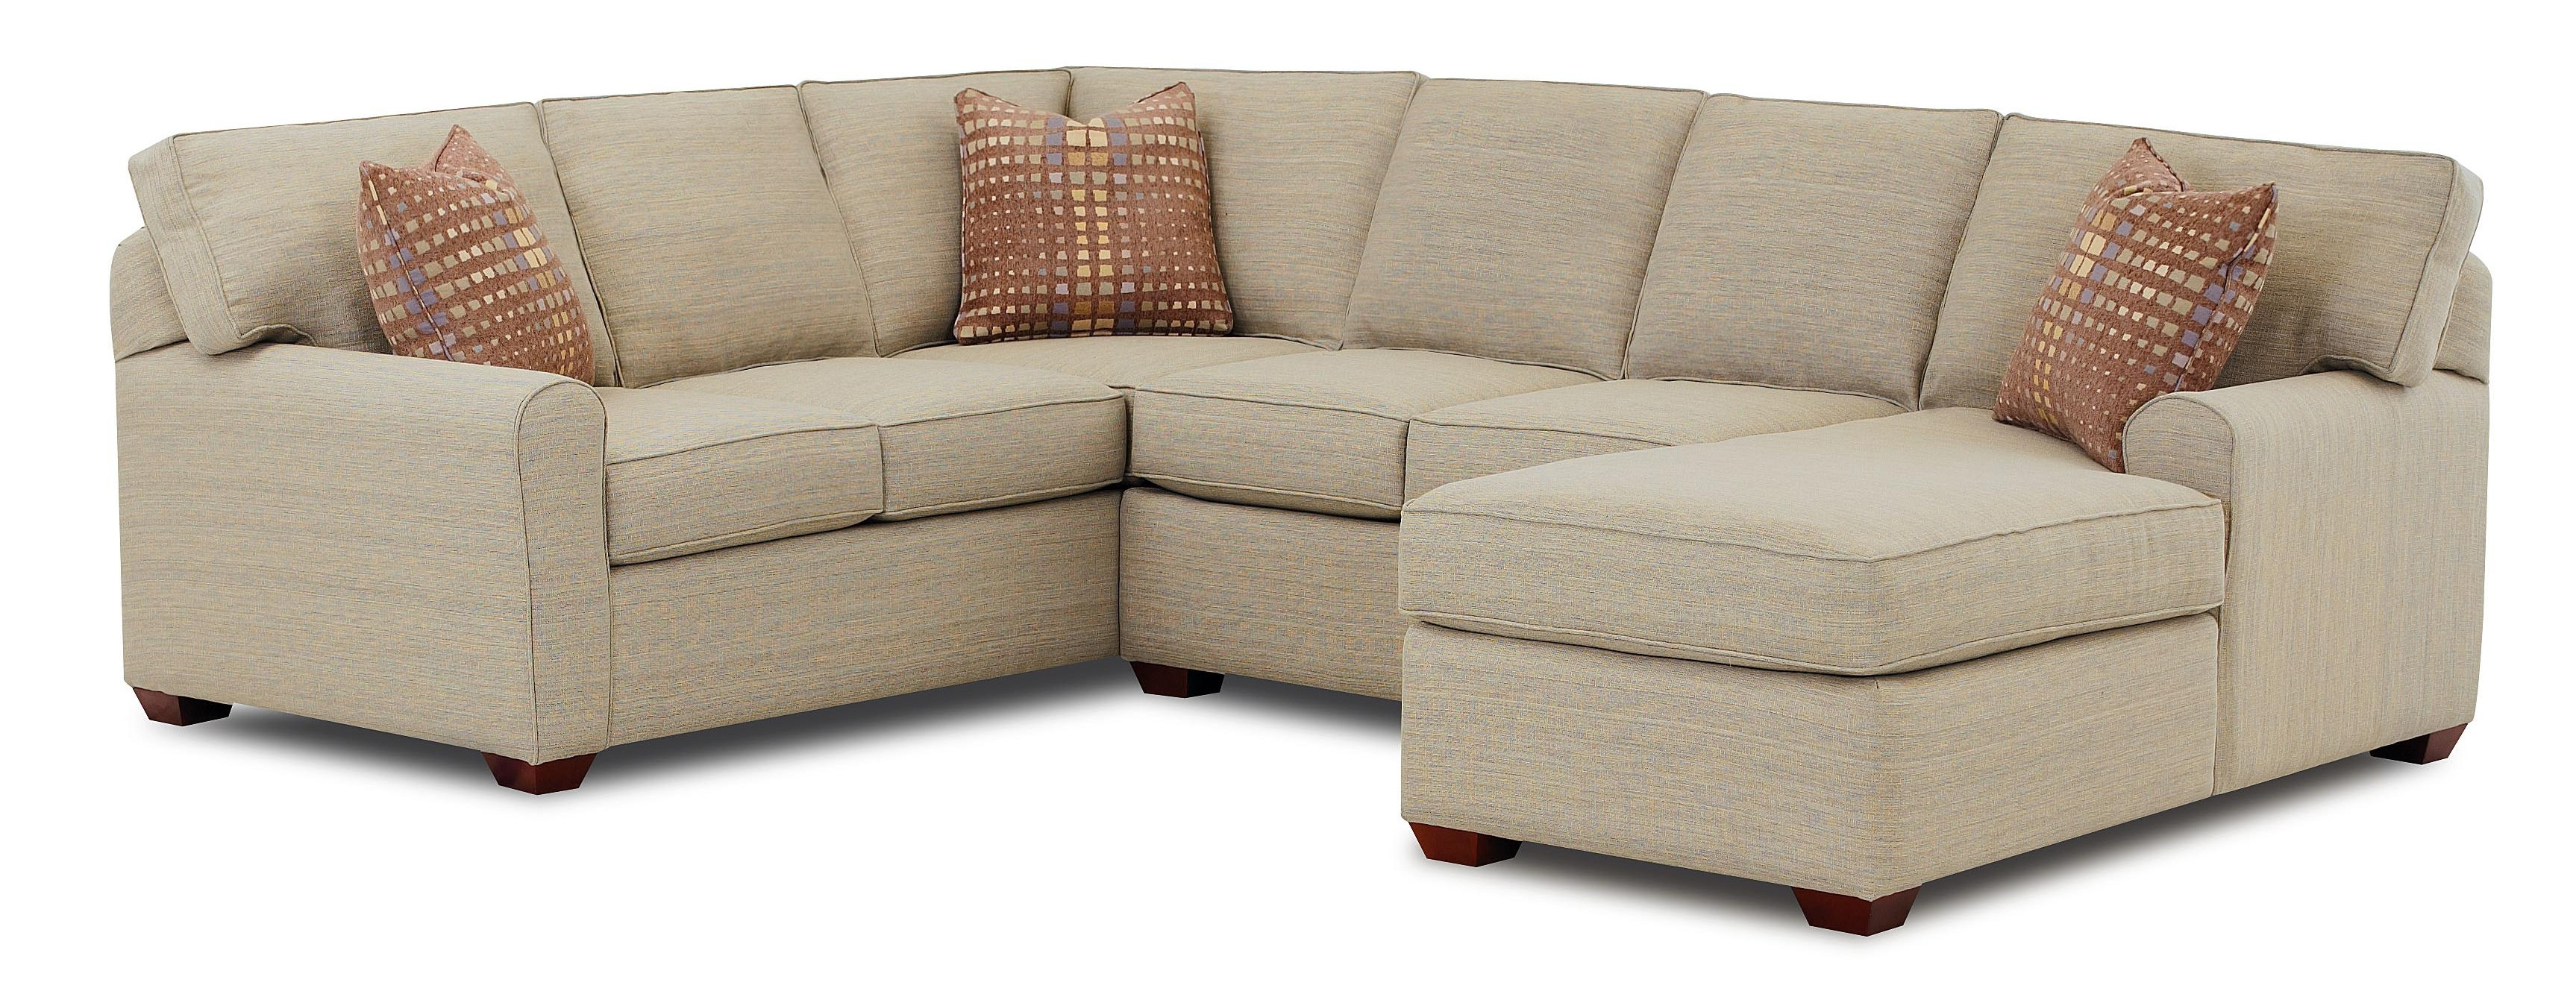 Klaussner Hybrid Sectional Sofa With Right Facing Chaise Lounge Throughout Chaise Sofa Chairs (Image 8 of 15)